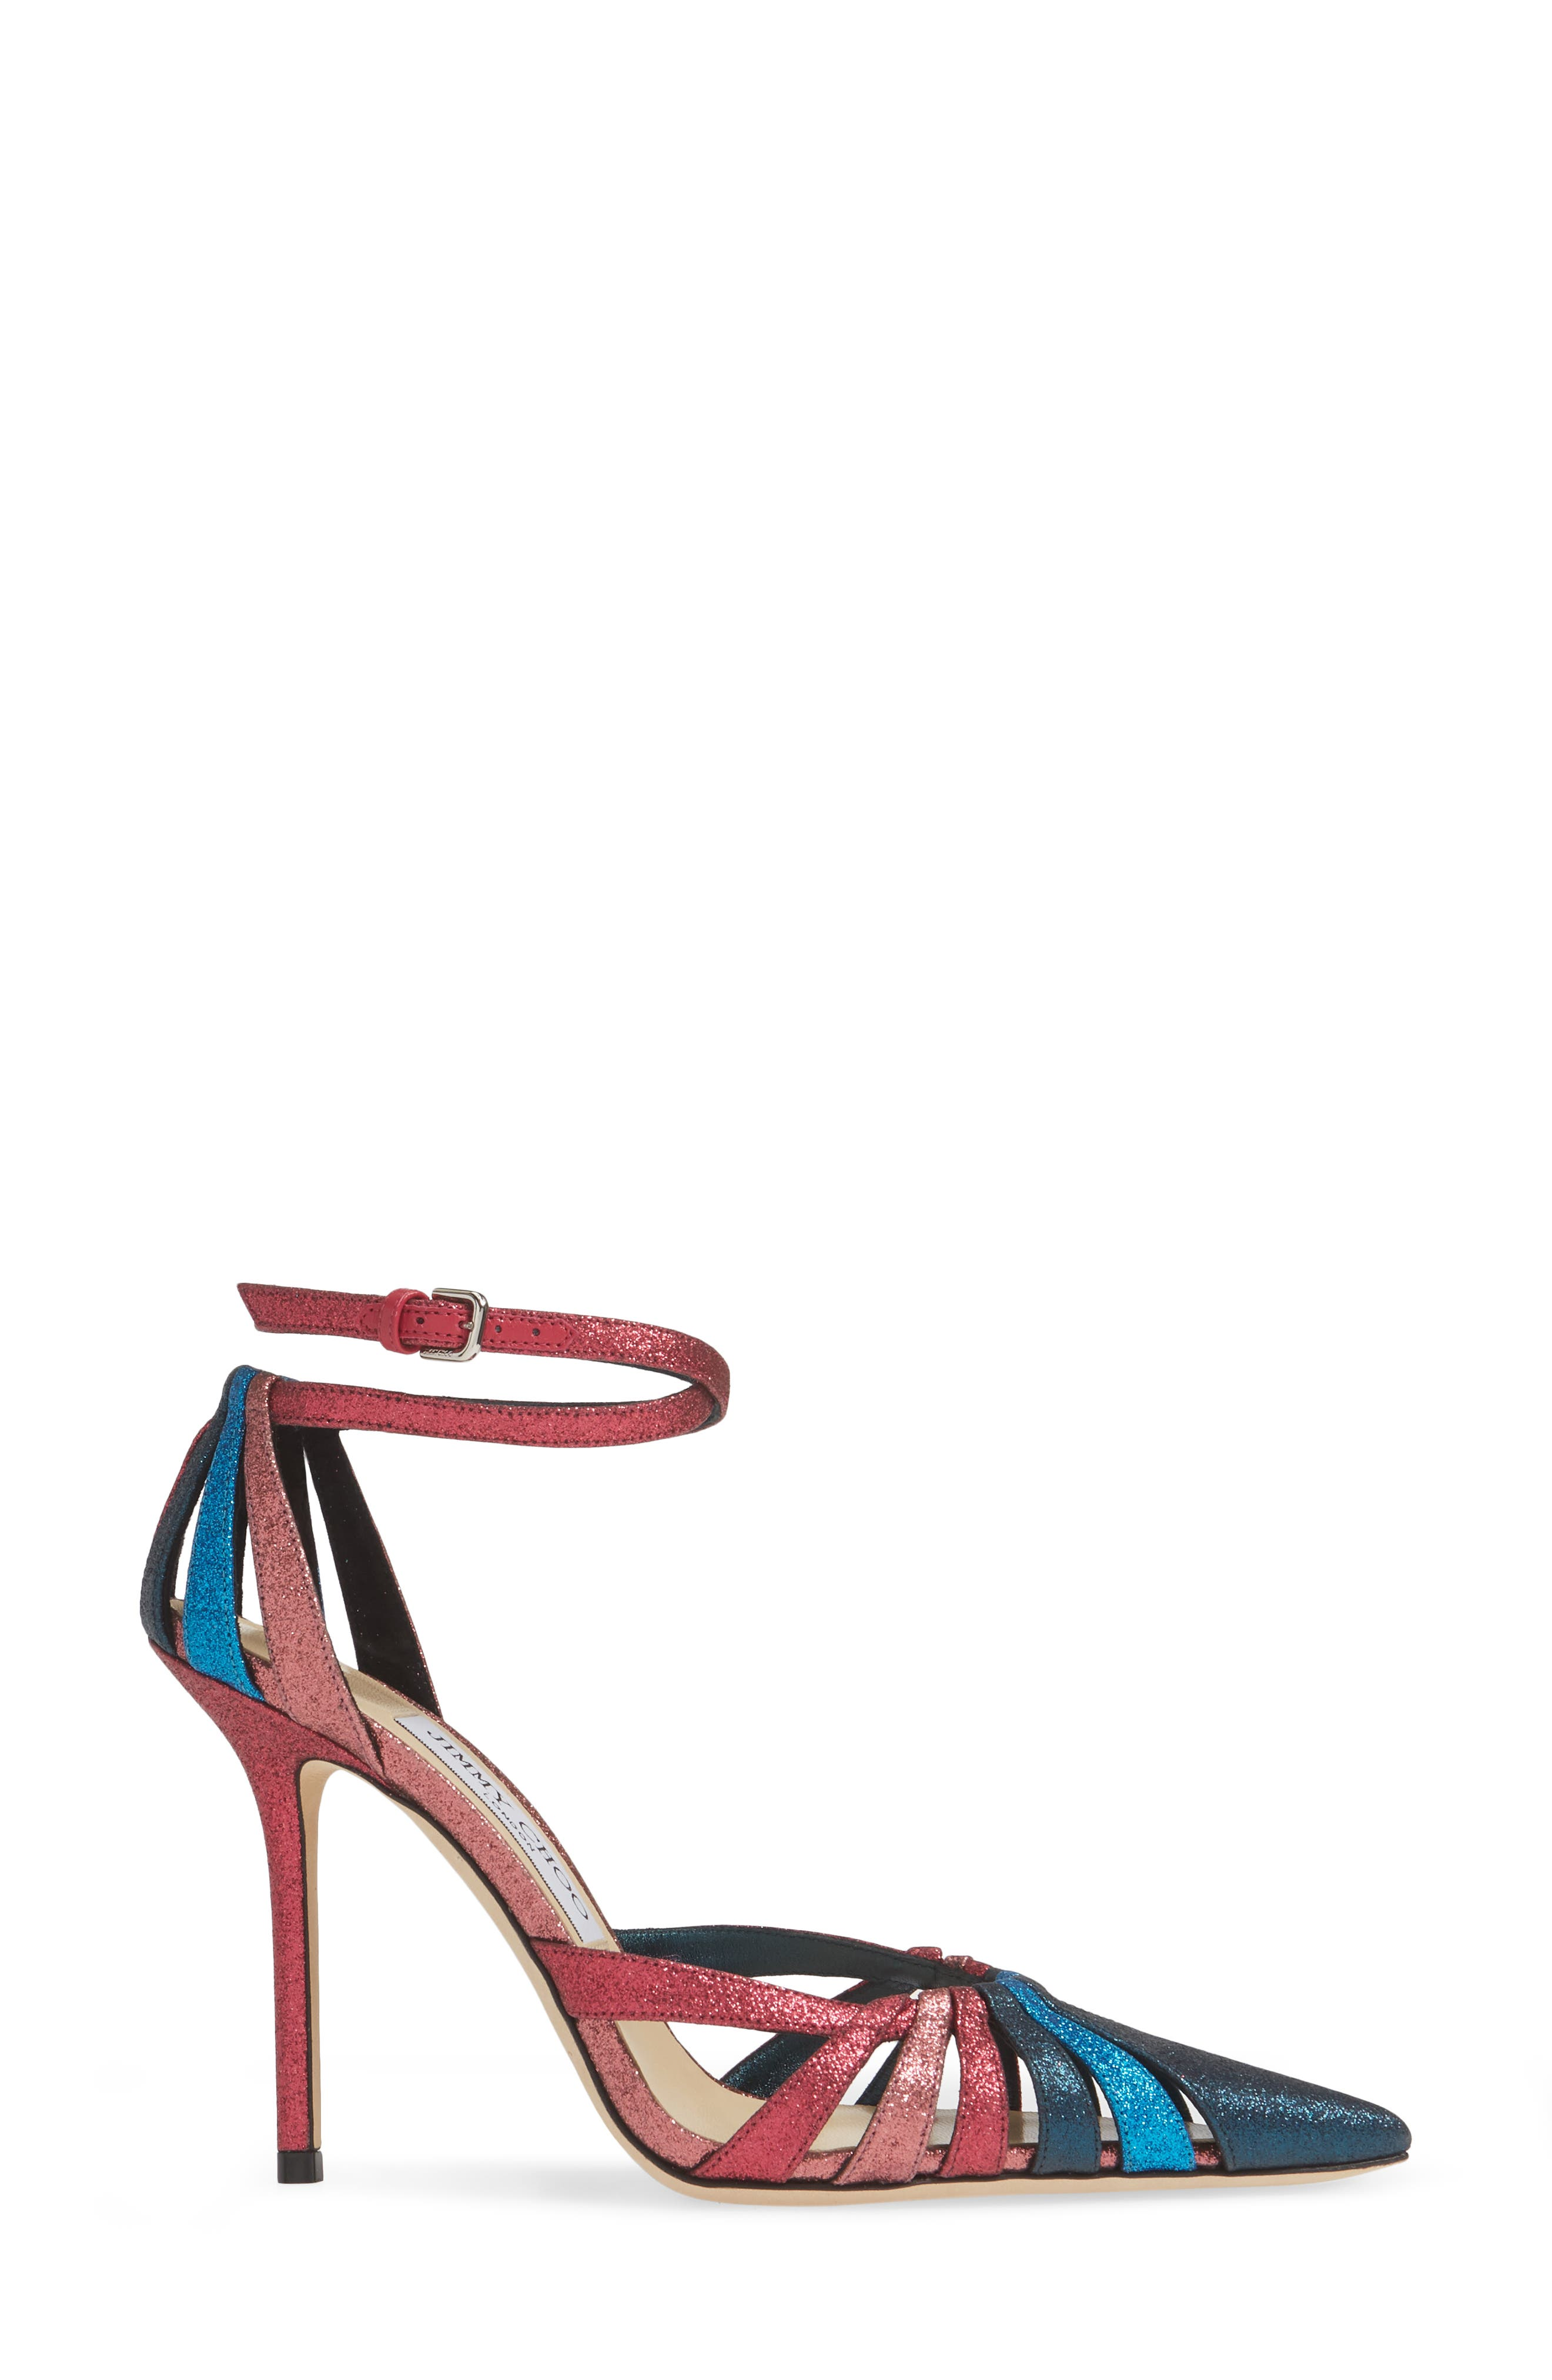 JIMMY CHOO, Travis Strappy Glitter Pump, Alternate thumbnail 3, color, RASPBERRY MIX